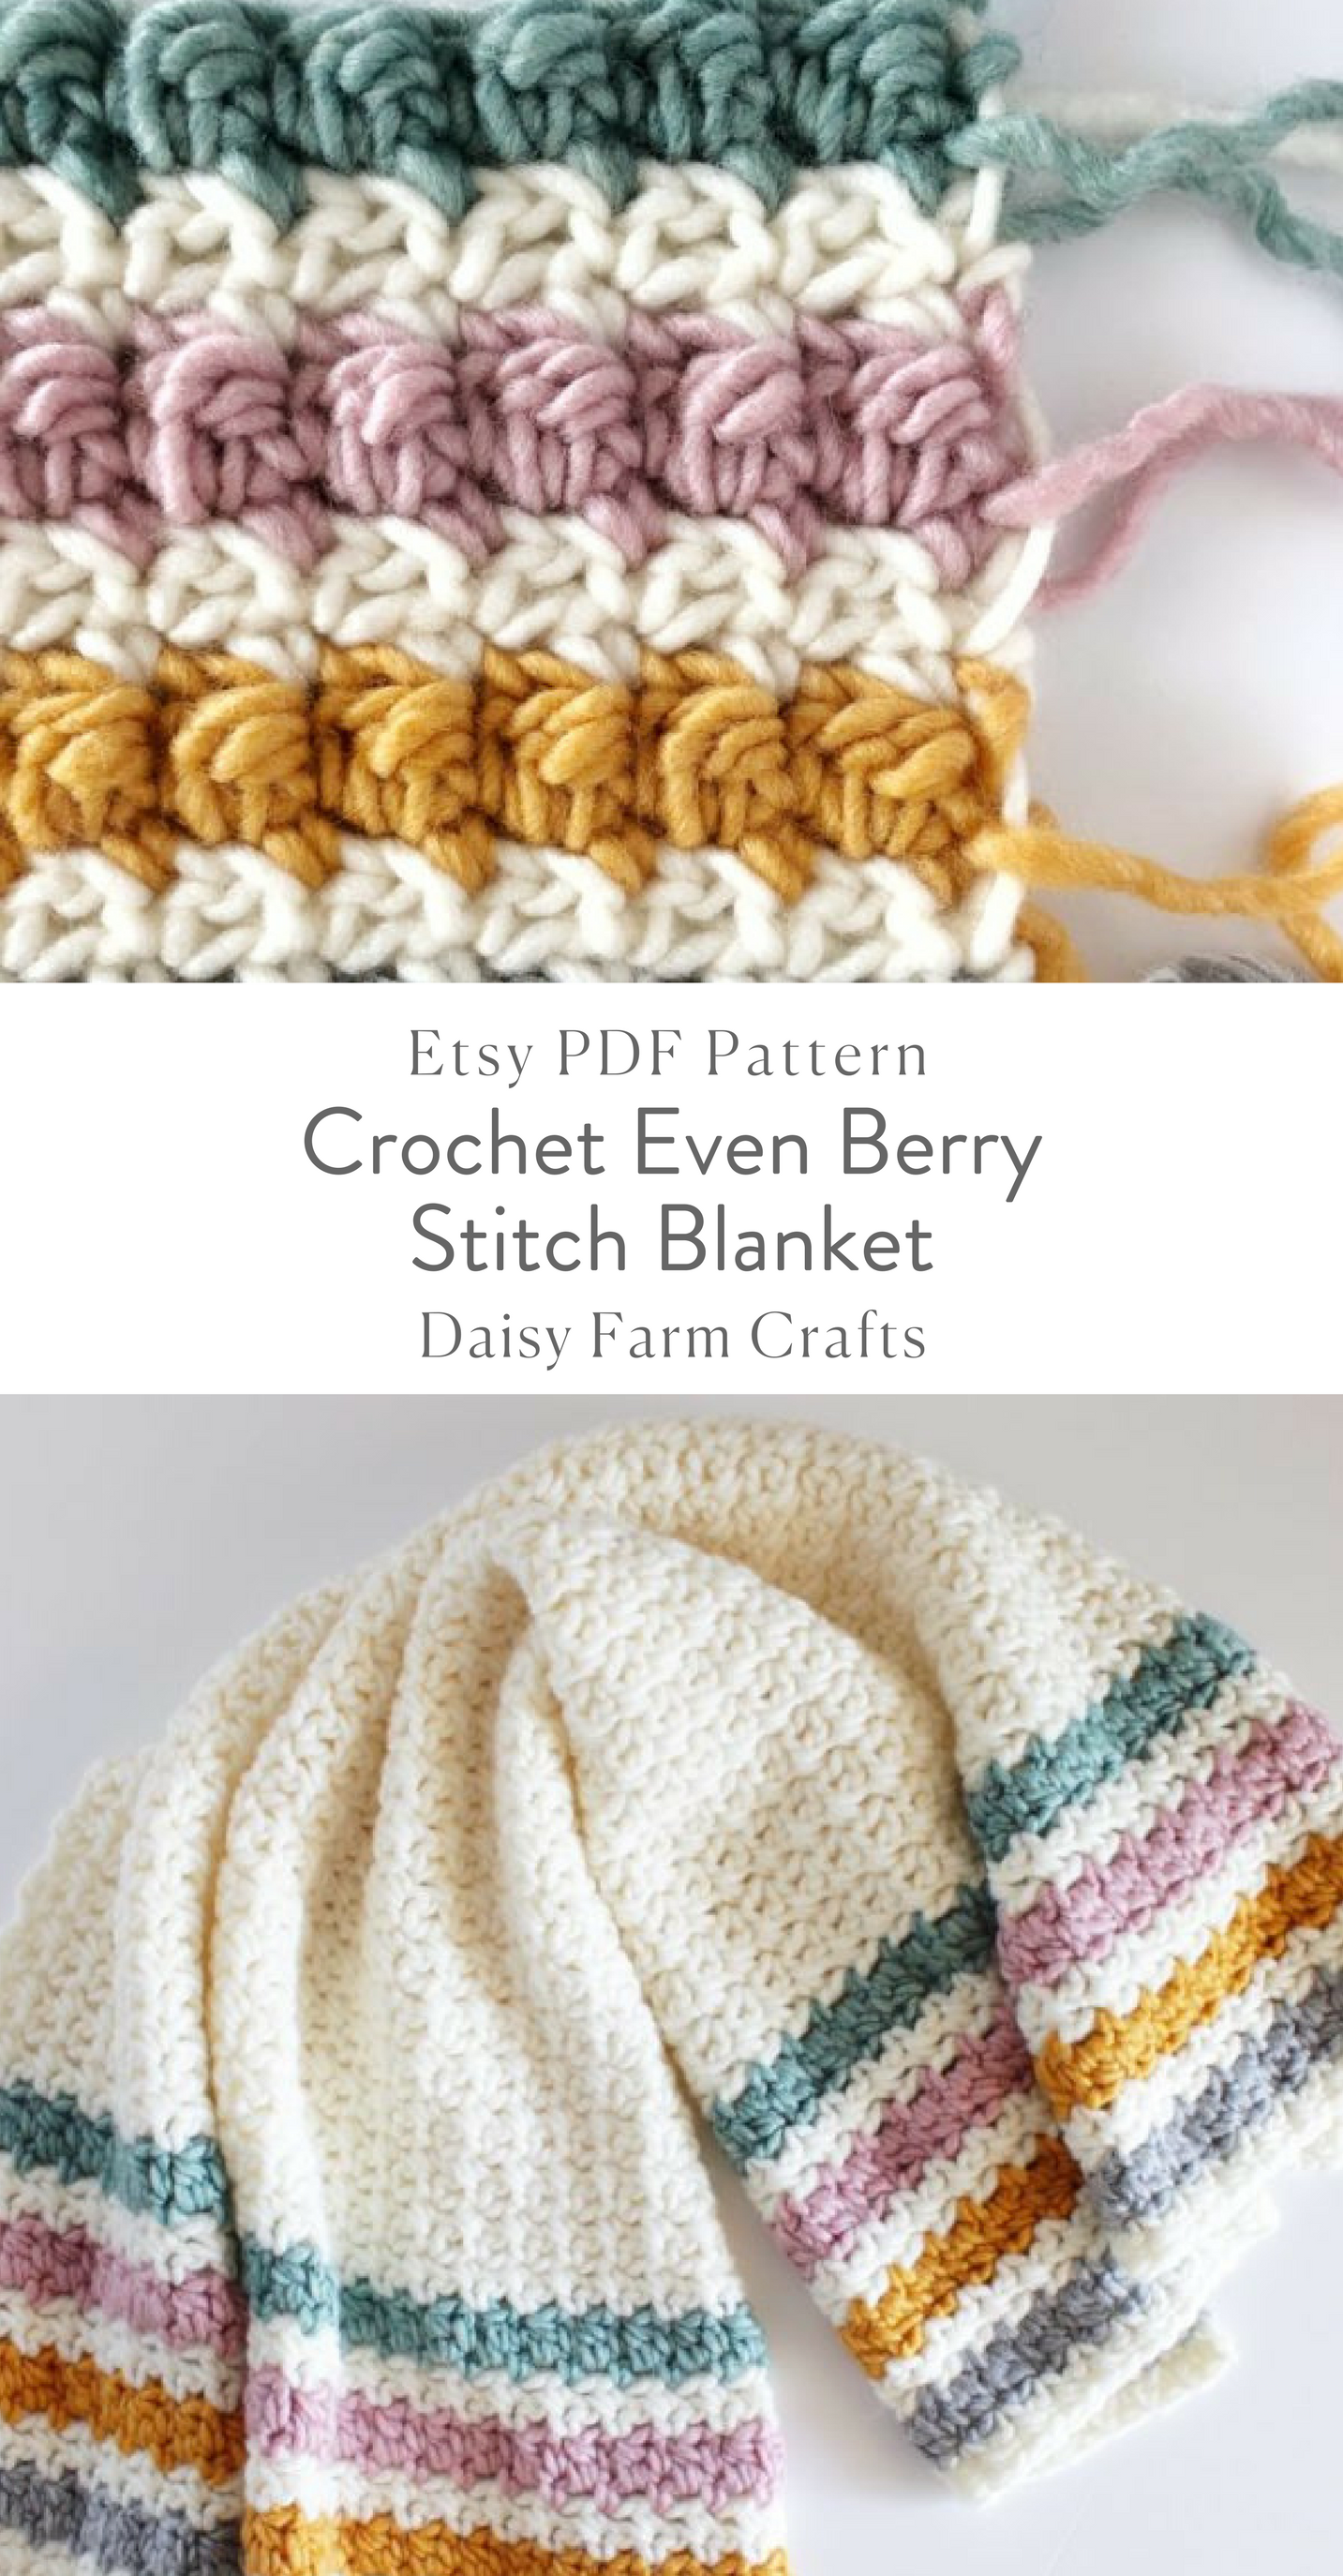 Crochet Even Berry Stitch Blanket Pattern | Crochet > DaisyFarm ...